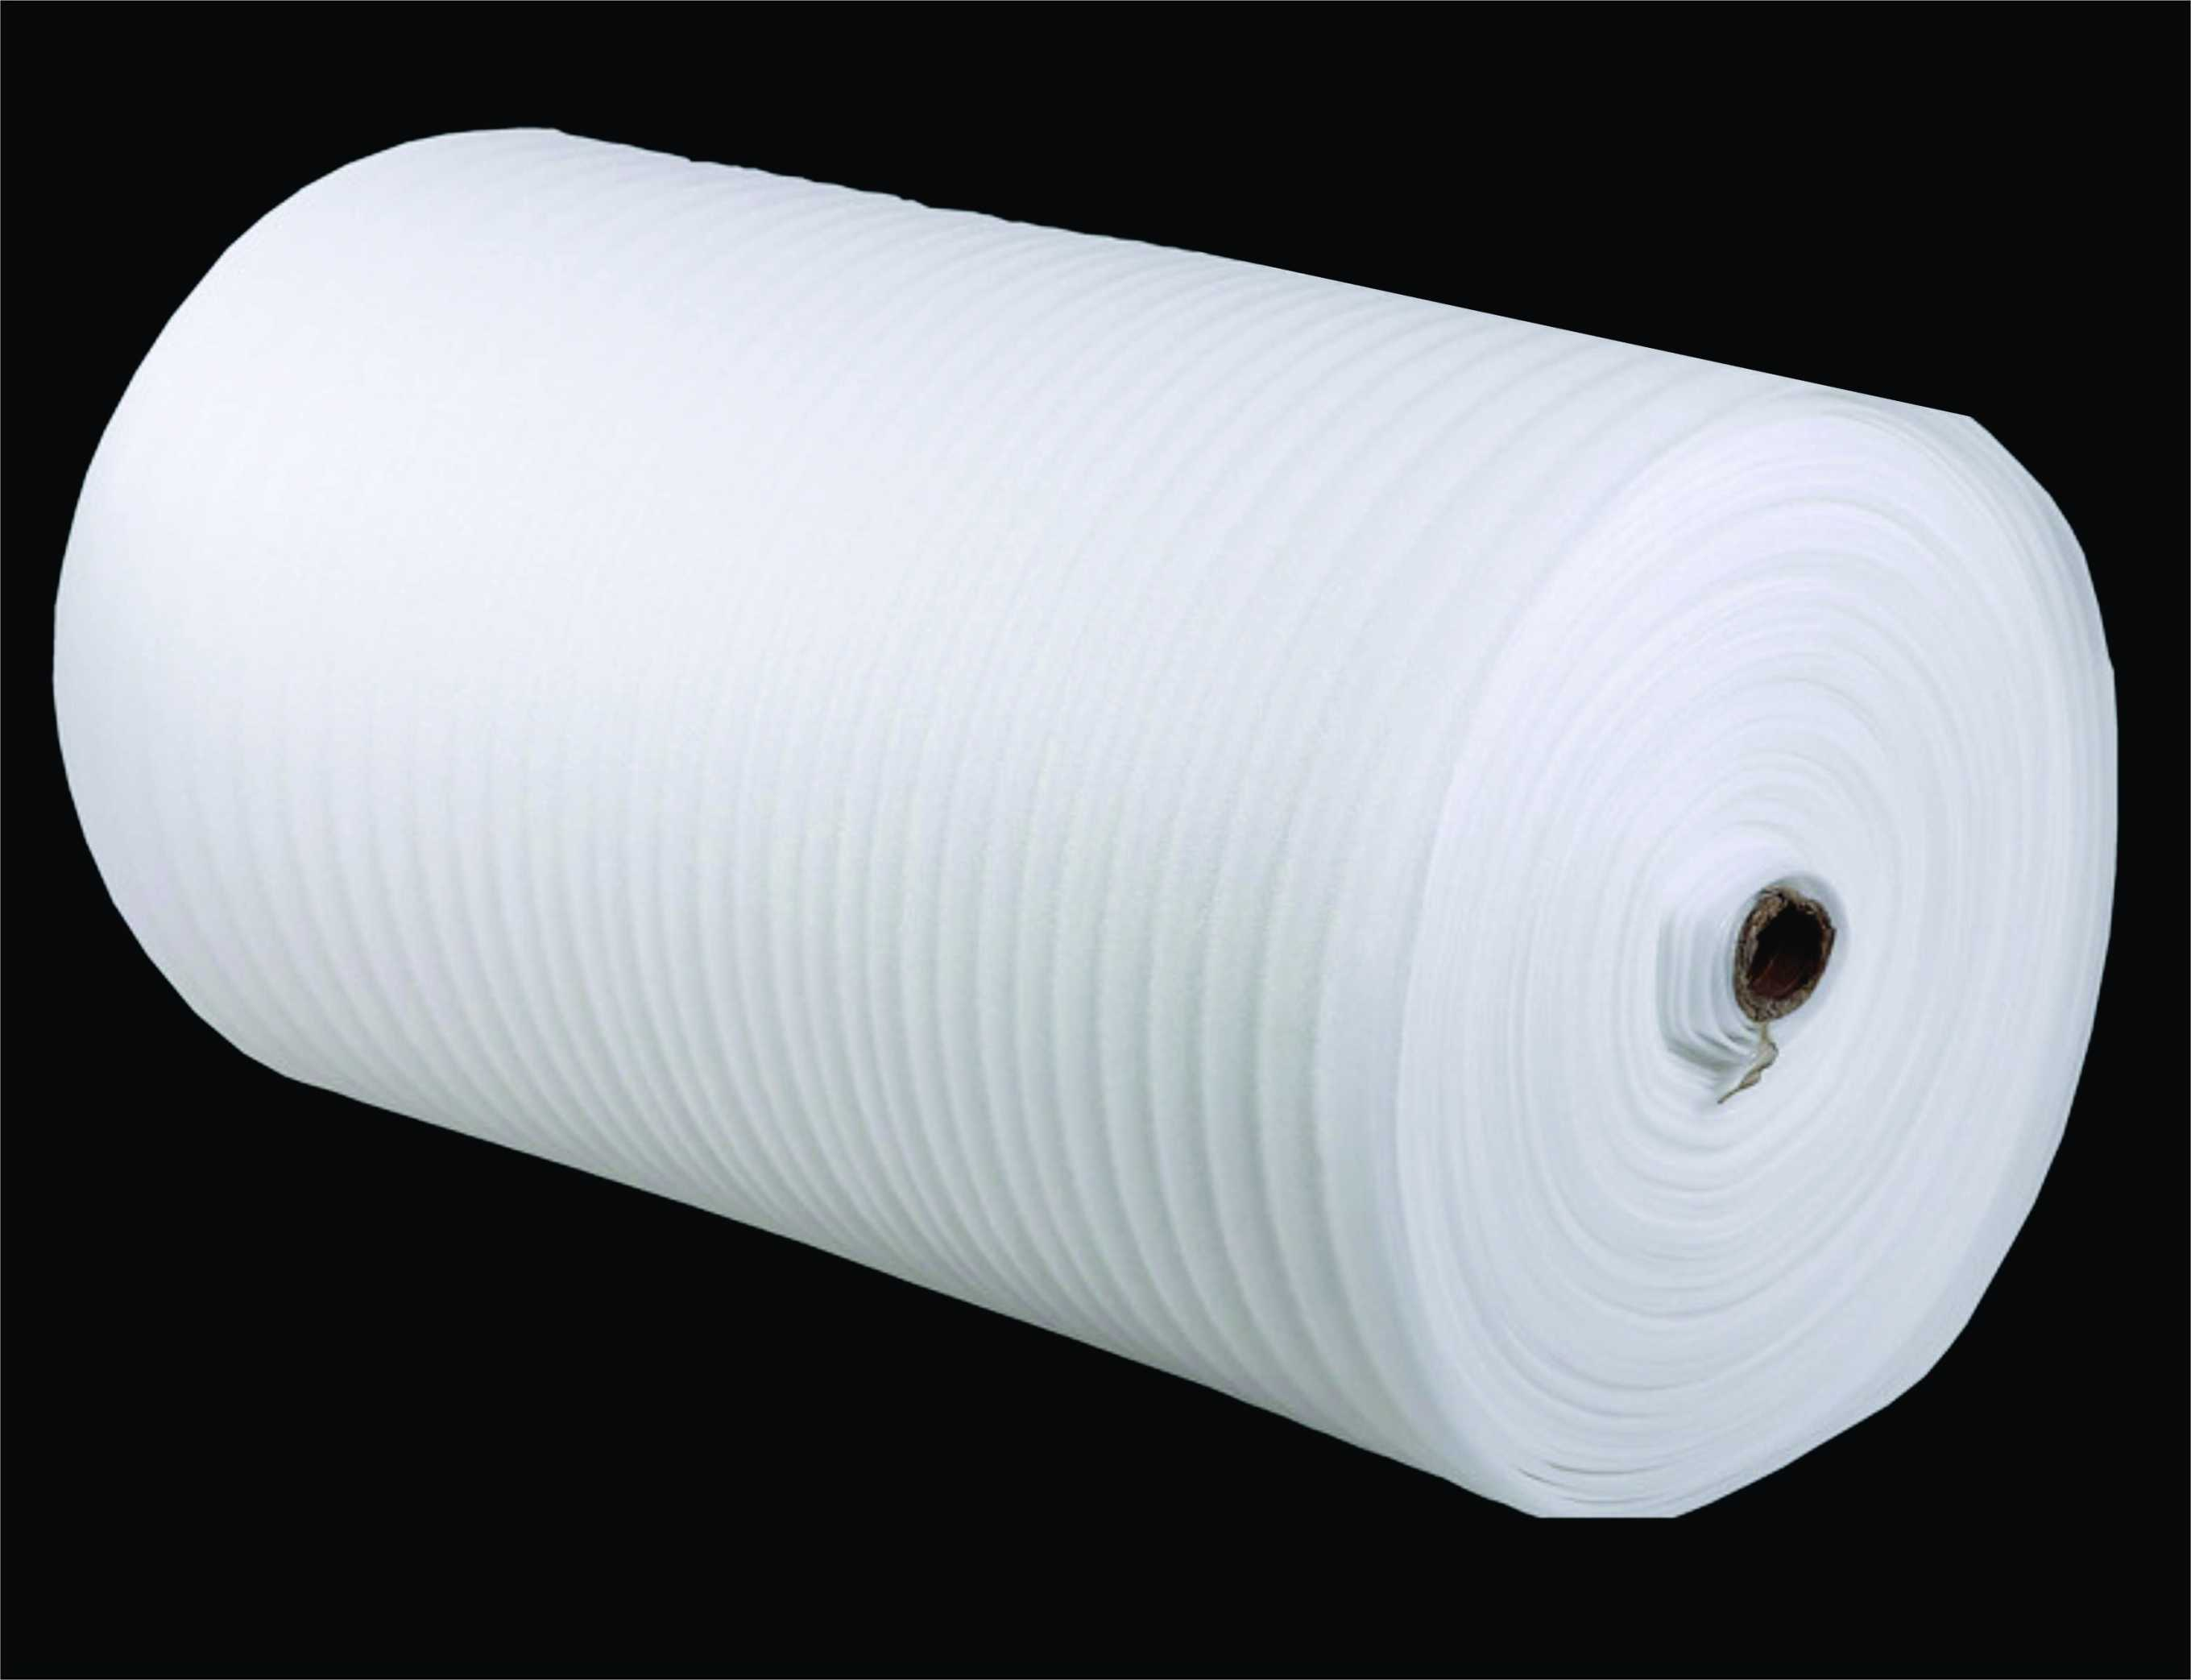 foam-packaging-roll-ecommerce-logistics-product